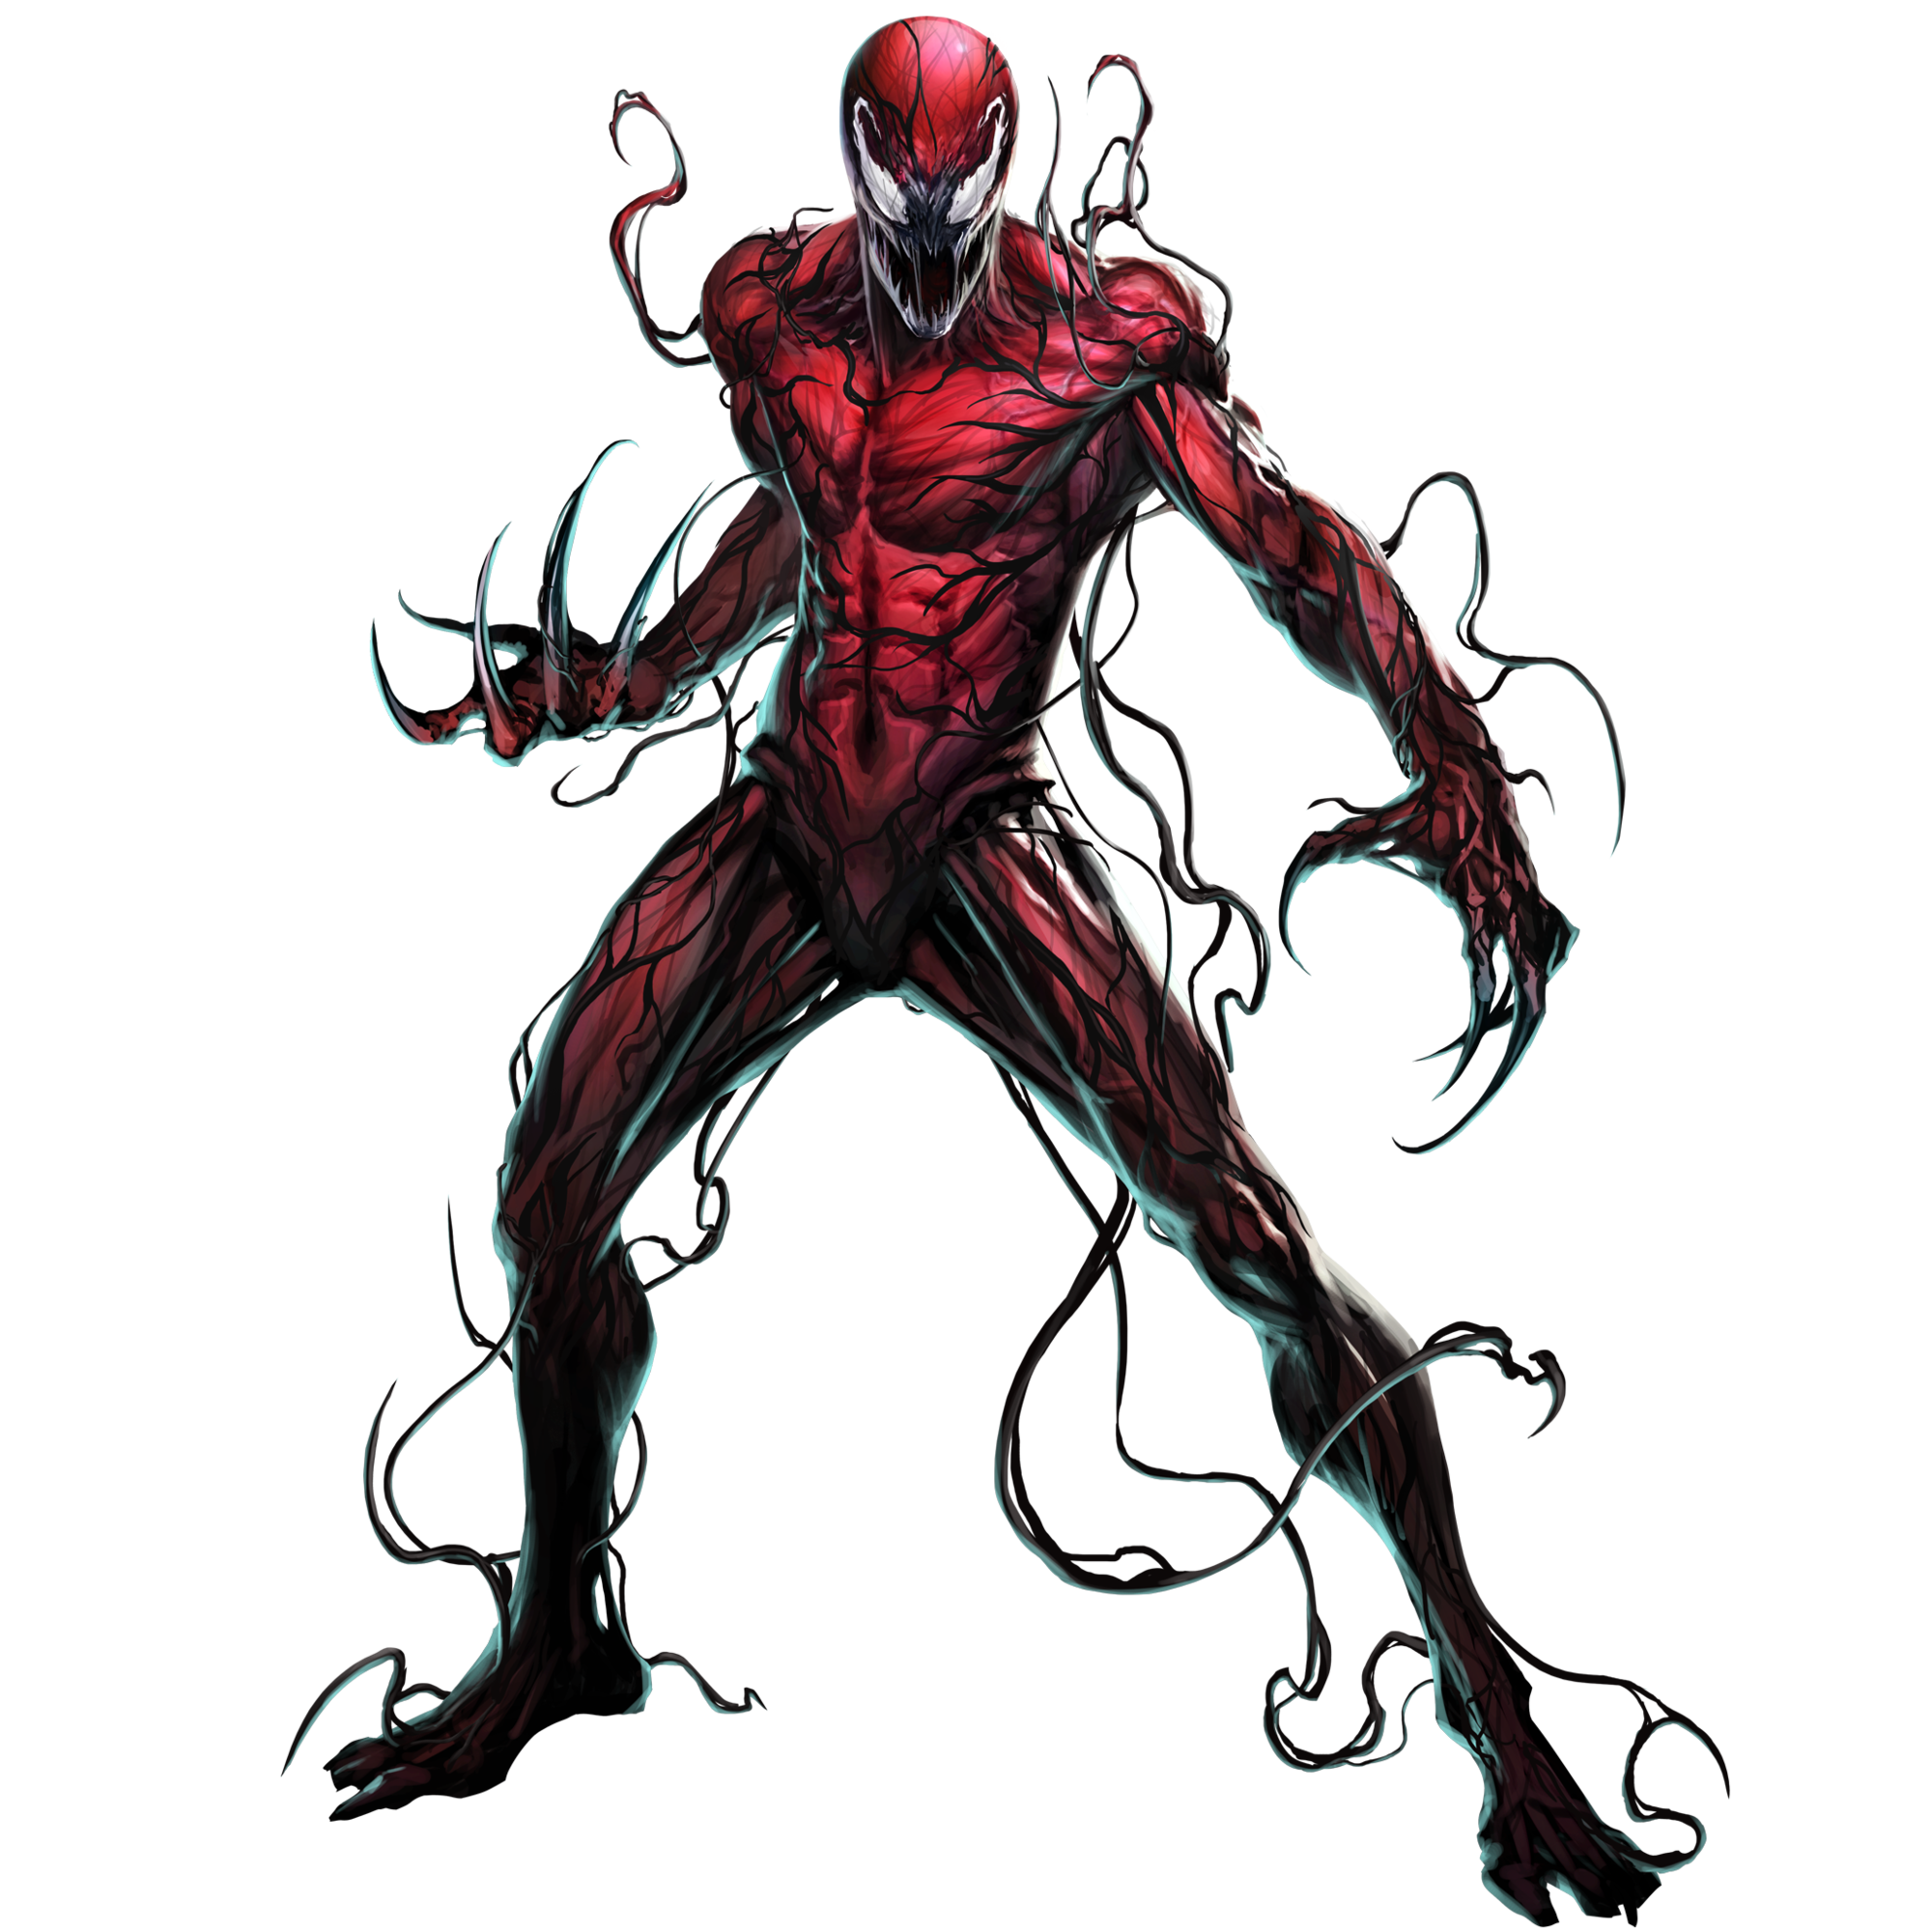 Spiderman venom png. Spider man and maximum